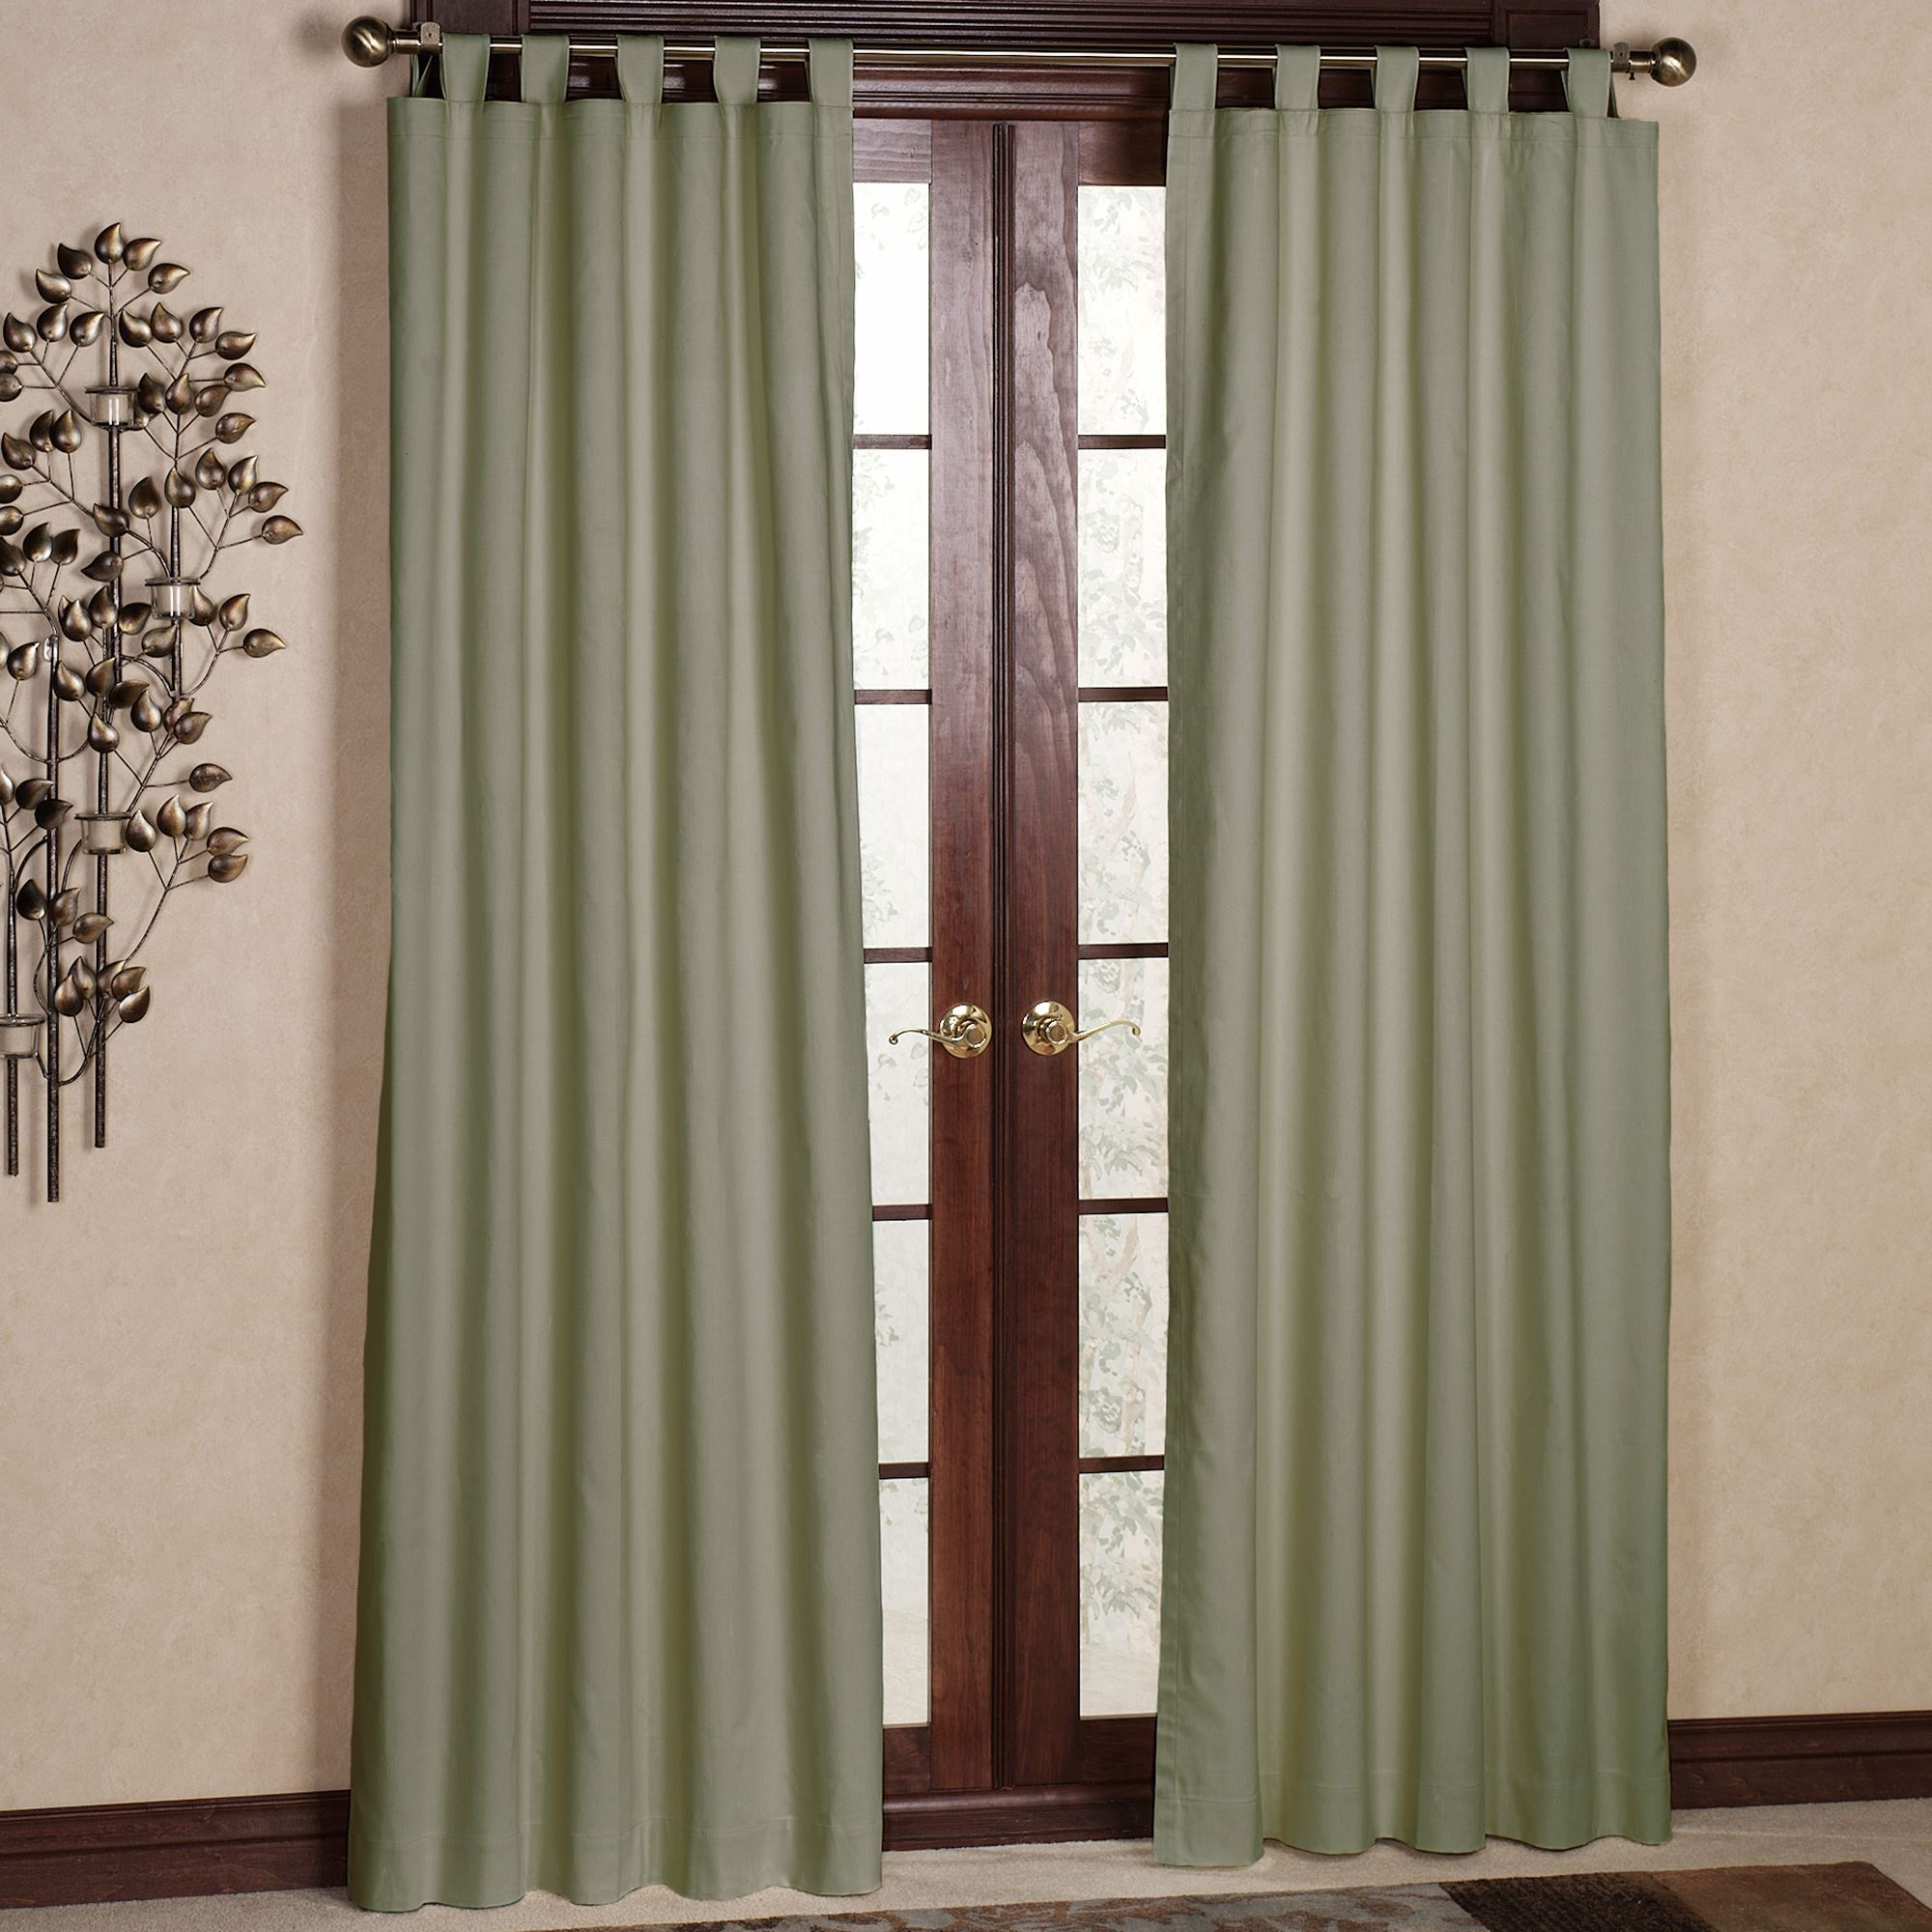 tos curtain pictures curtains ideas size full drapes directions beautiful factory drapesstrip direct and of strip ltdcurtain